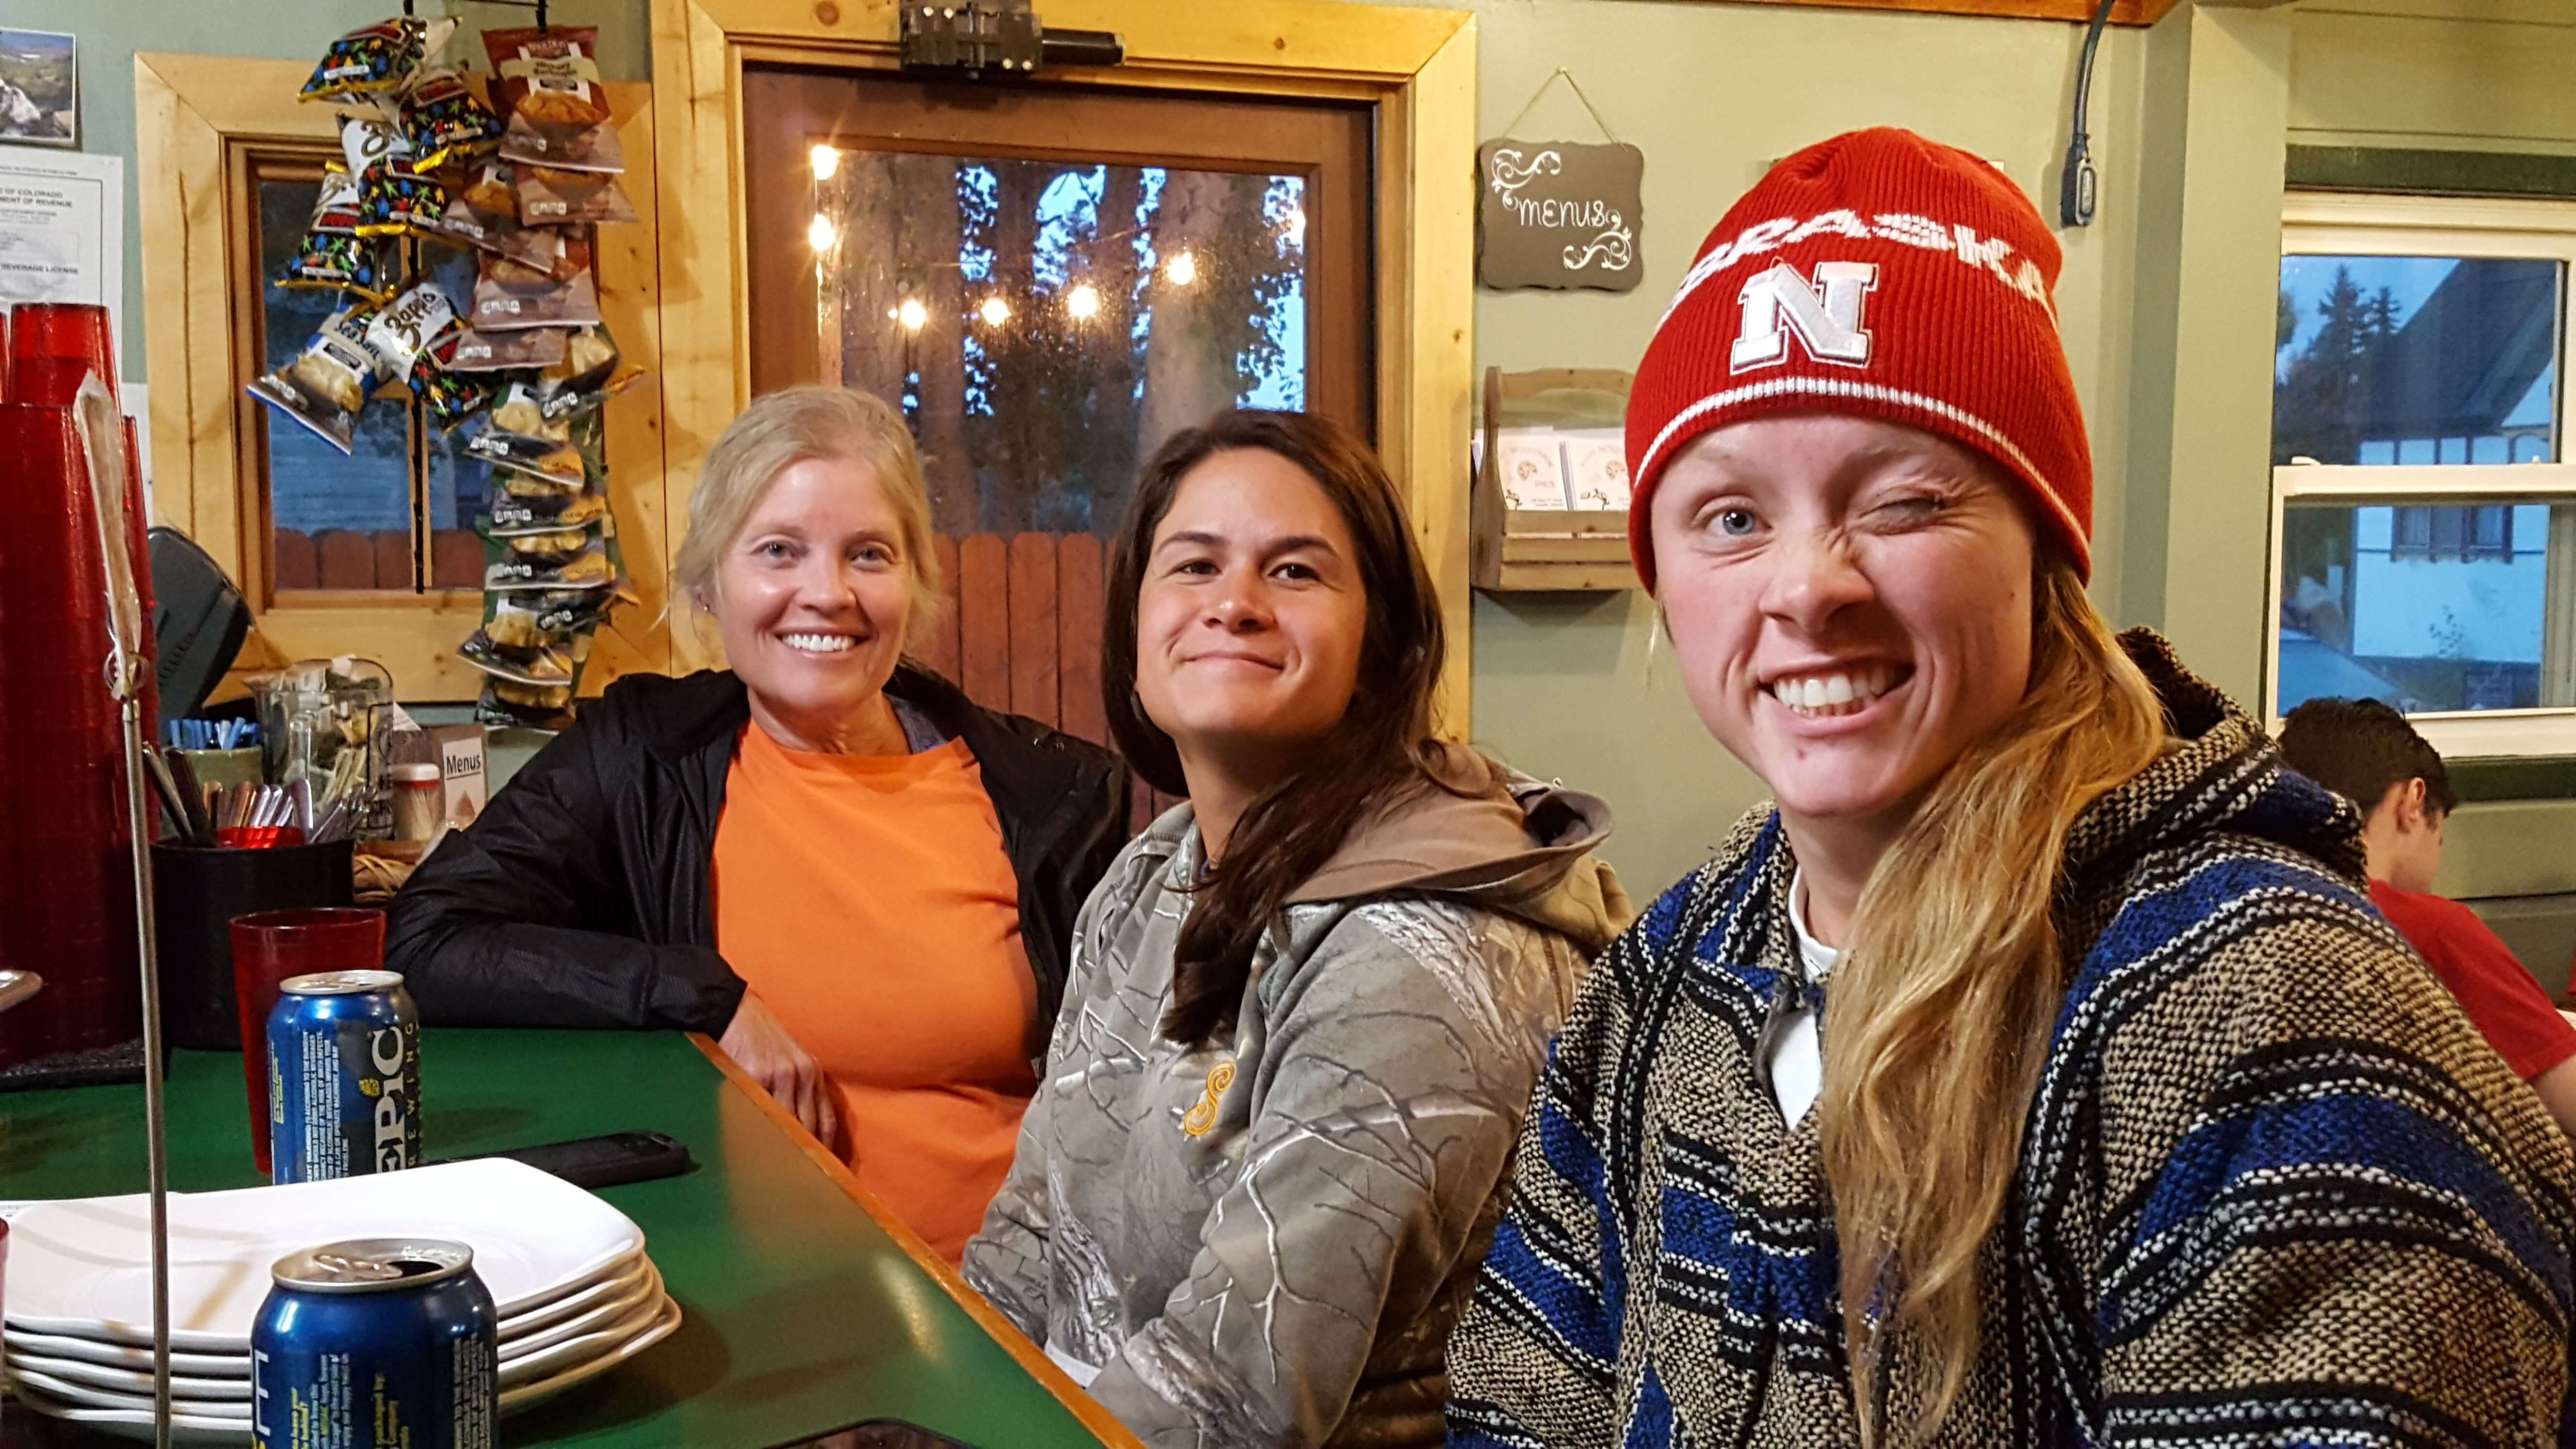 Mountain High Pies in Leadville, CO